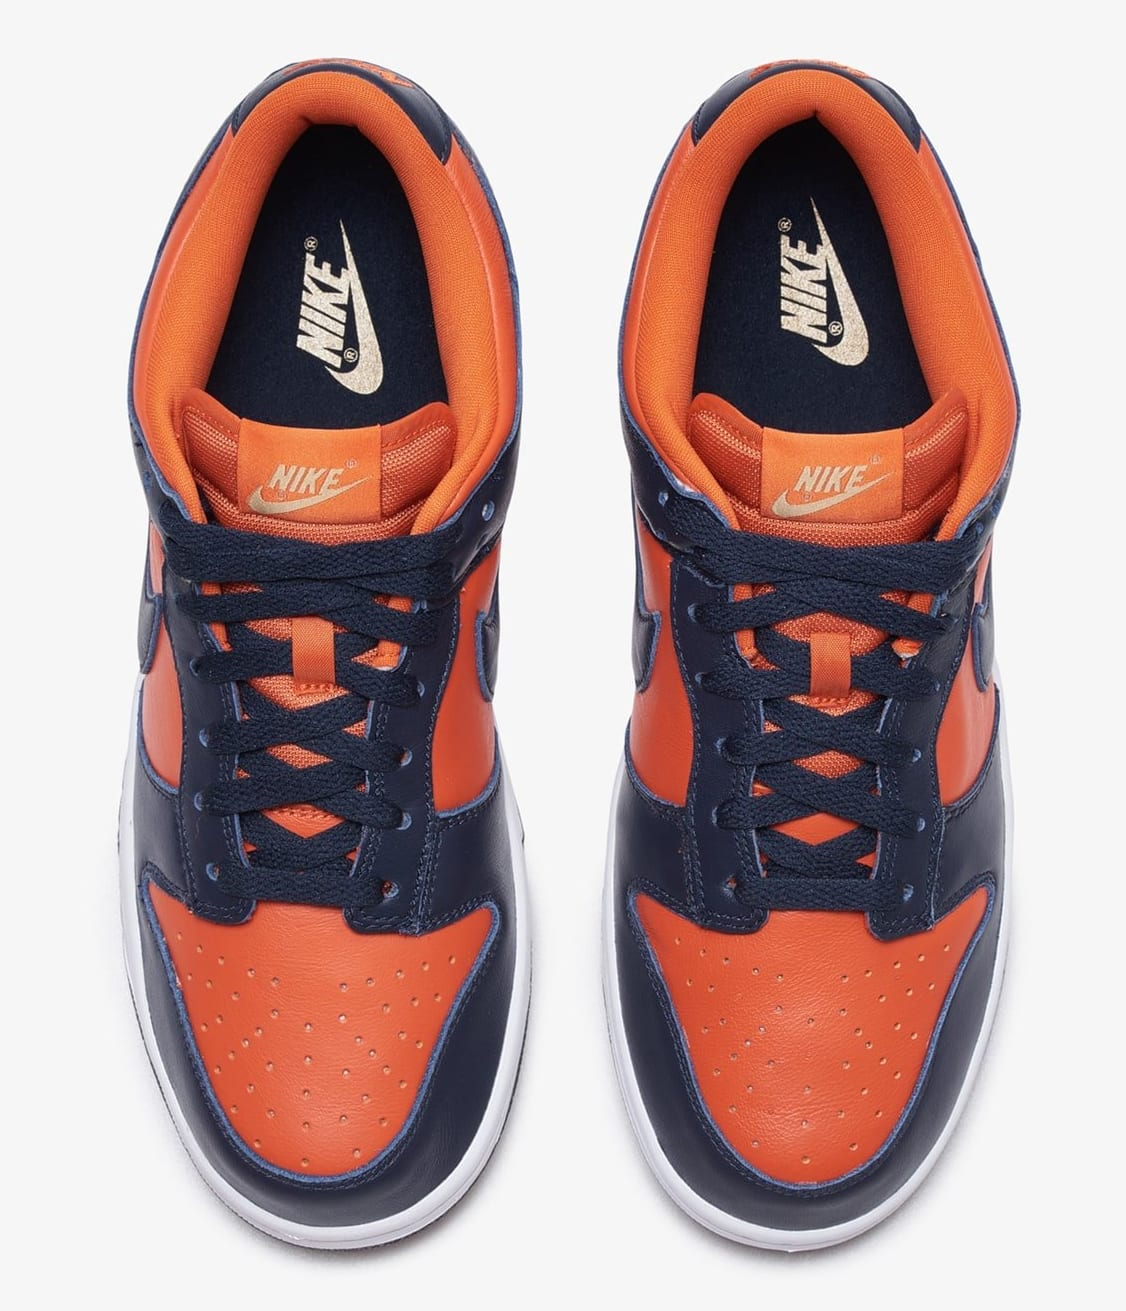 Nike Dunk Low 'Champ Colors' CU1727-800 Top